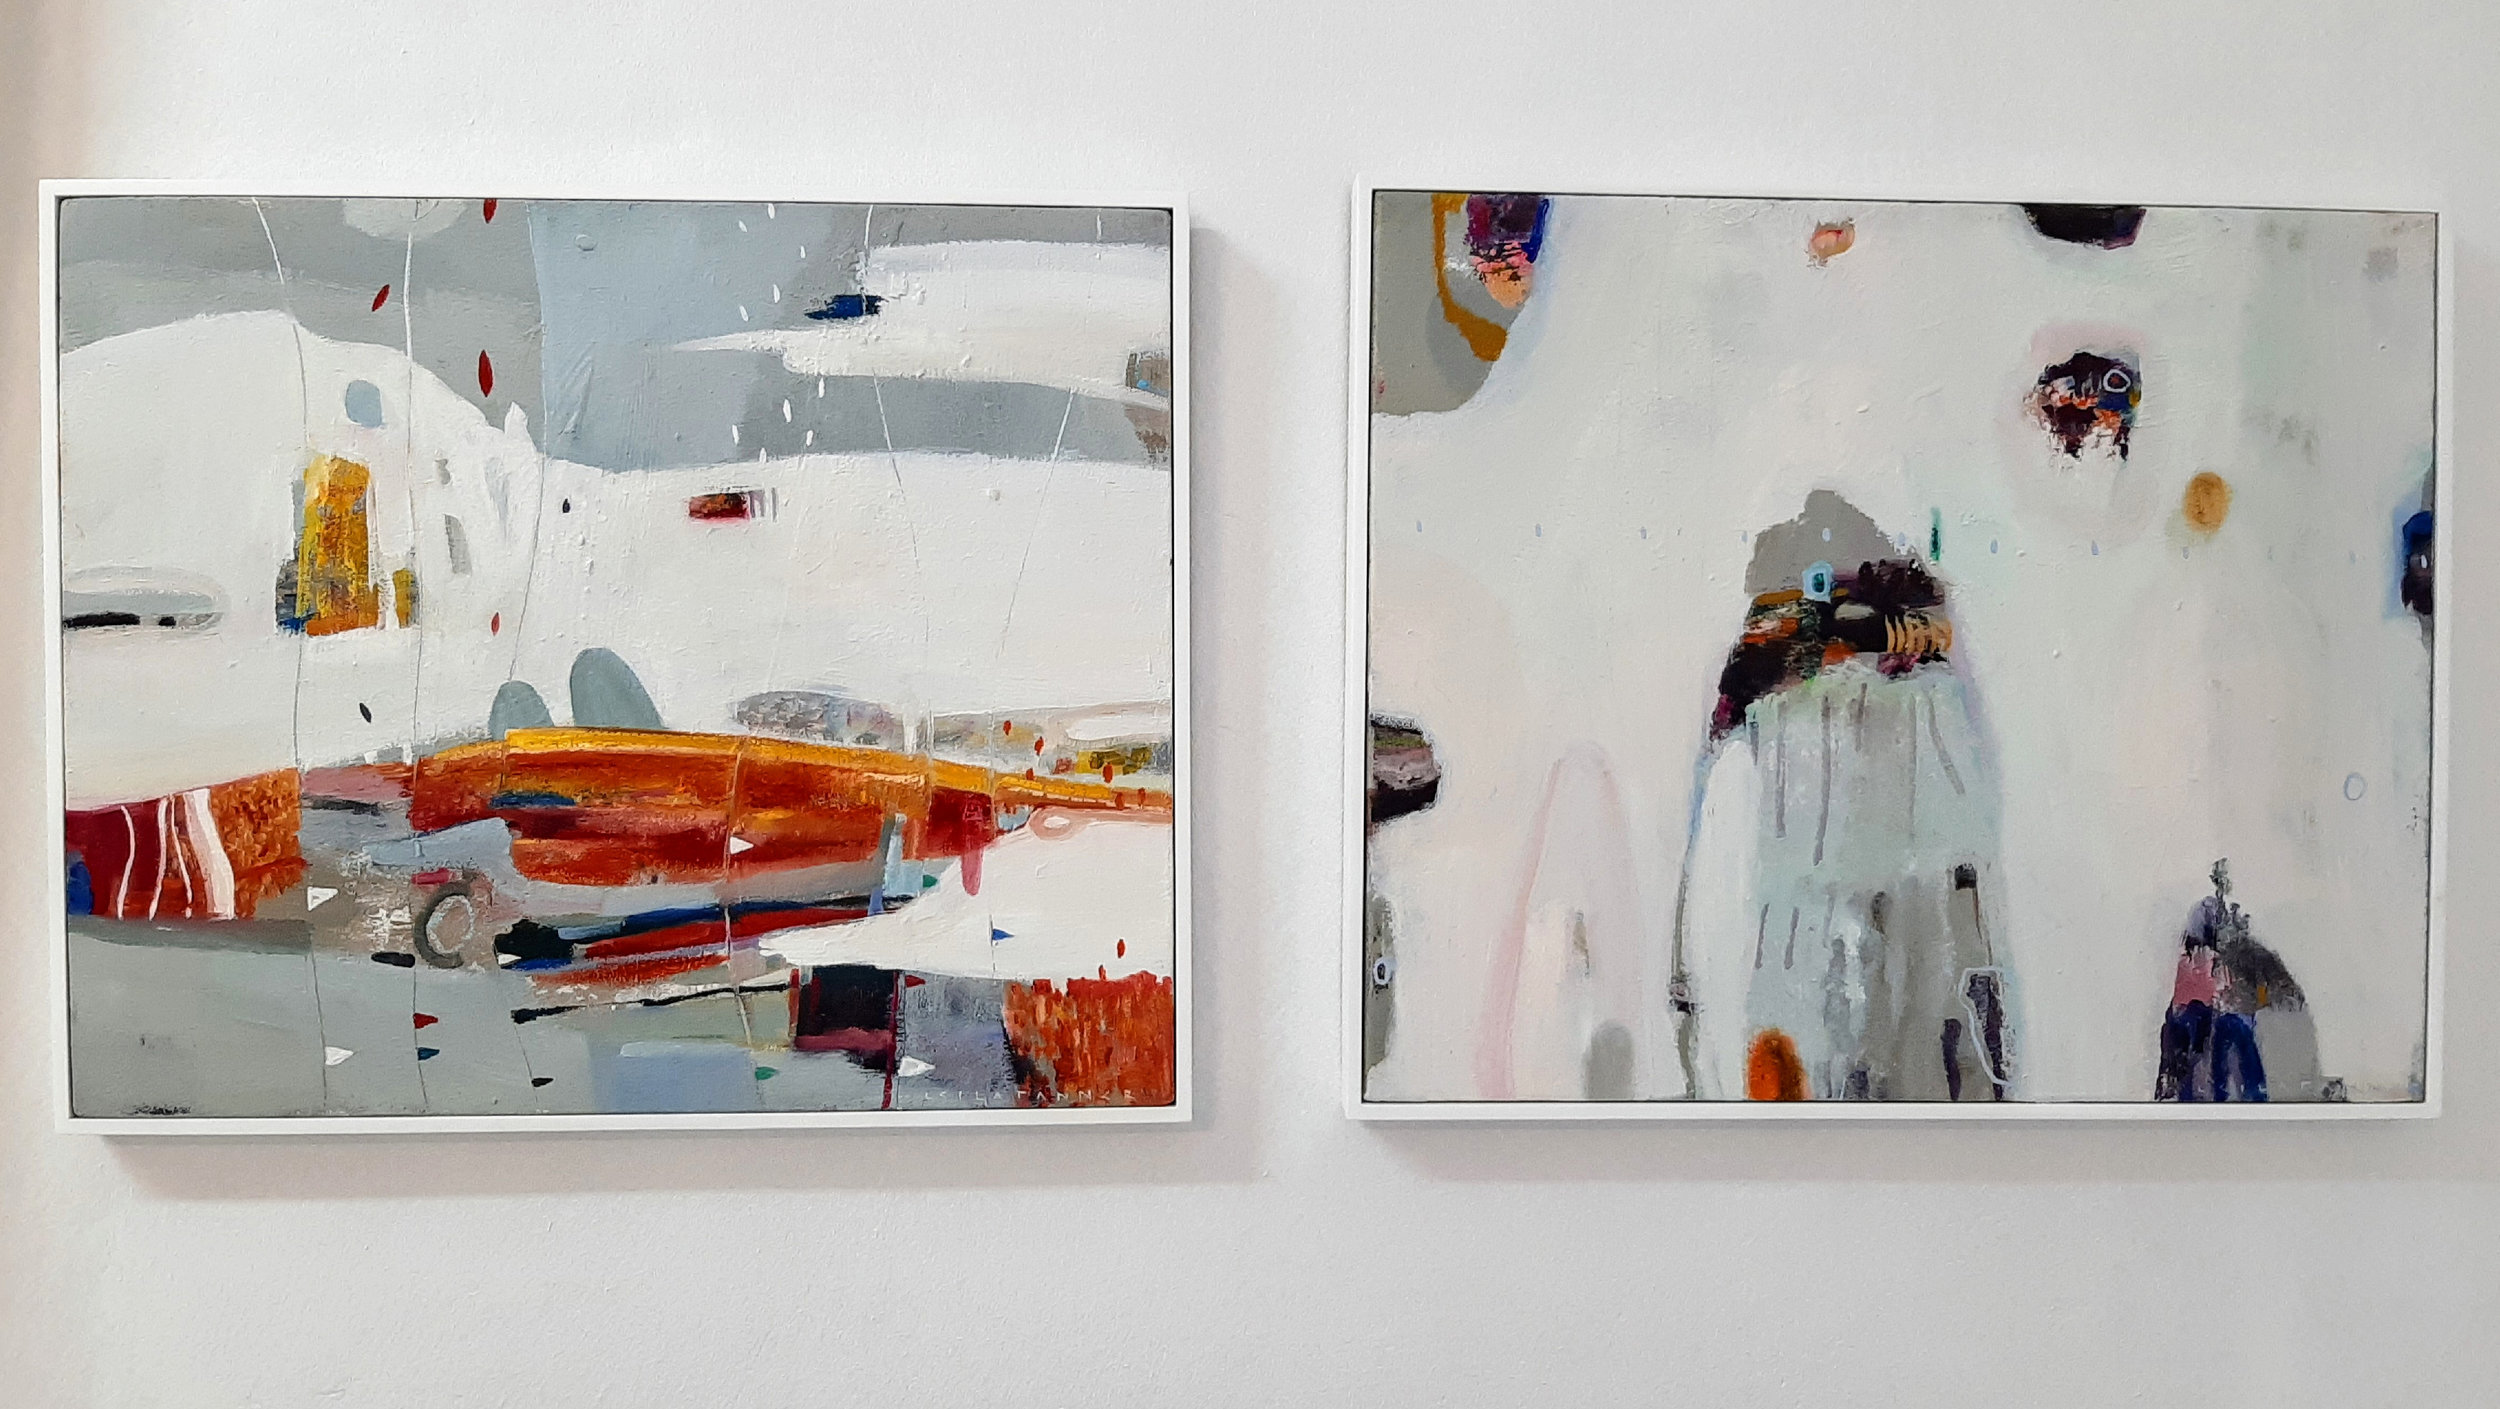 Flame River & Jewel Cavern - Oil and Oil Pastel on Canvas430 x 540 mm440 x 530 mmFramed5800 ZAR Each